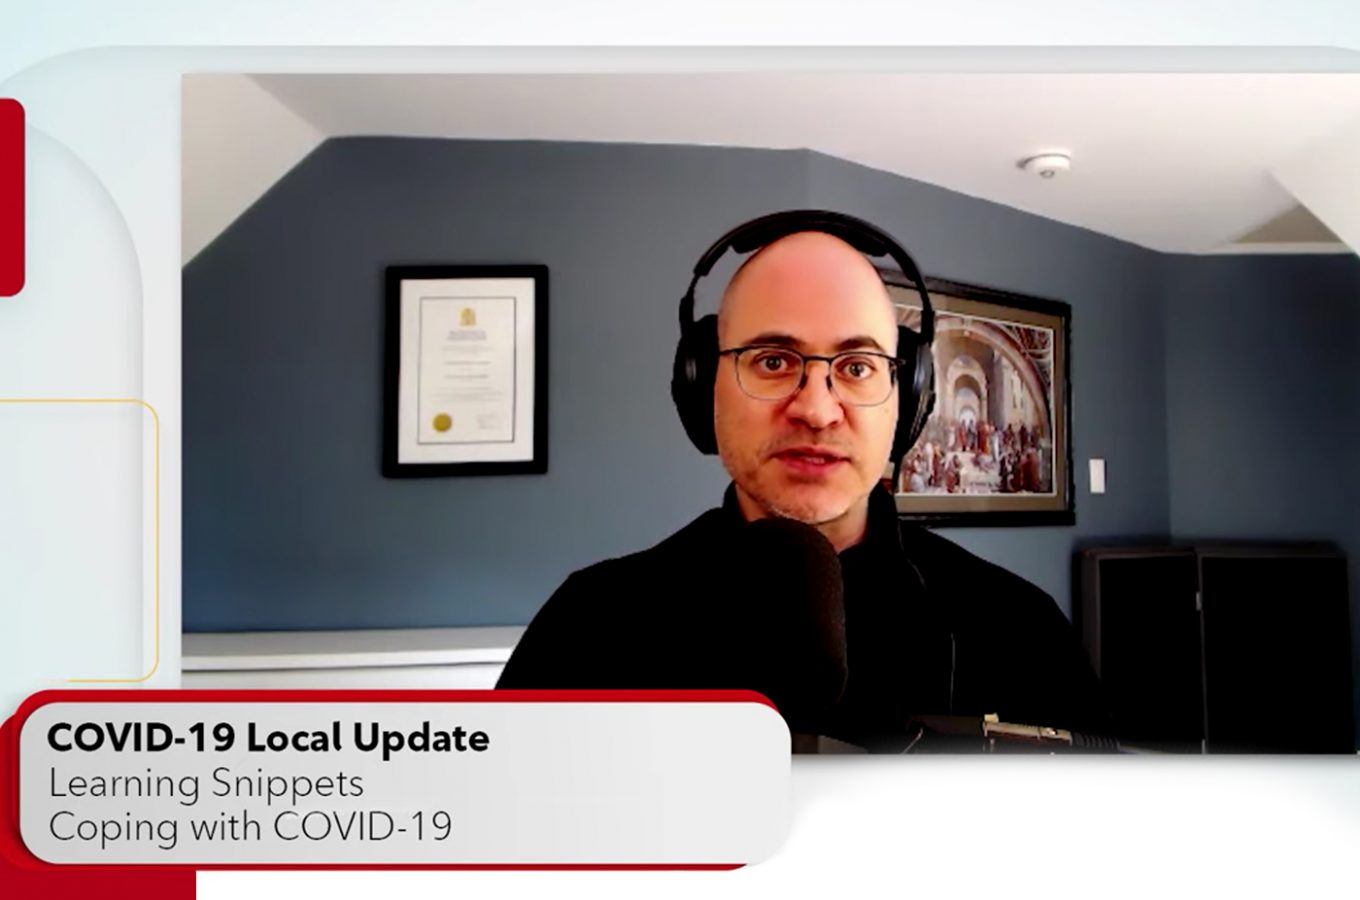 Aaron Barth speaking about Learning Snippets on Rogers TV COVID-19: Local Updates